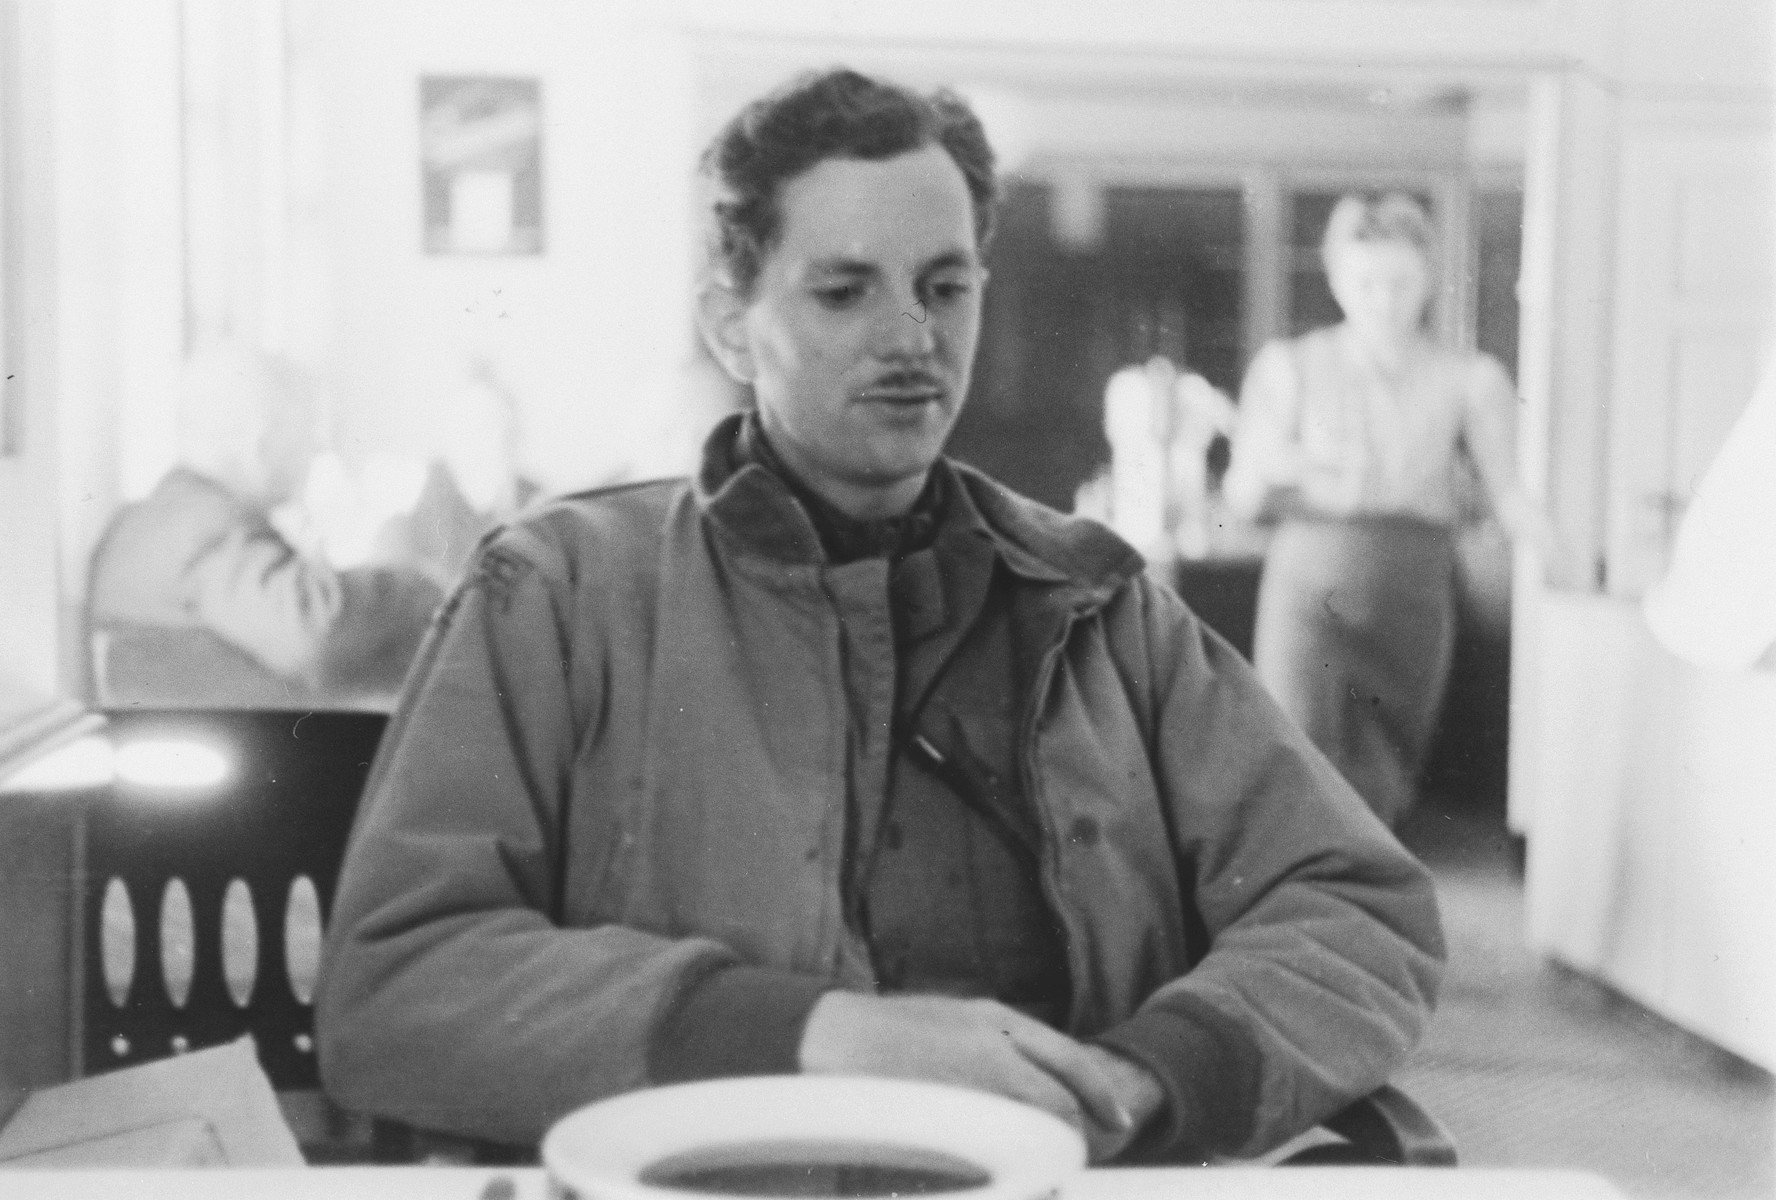 Portrait of U.S. combat photographer Arnold E. Samuelson seated in a dining hall with a bowl of soup.